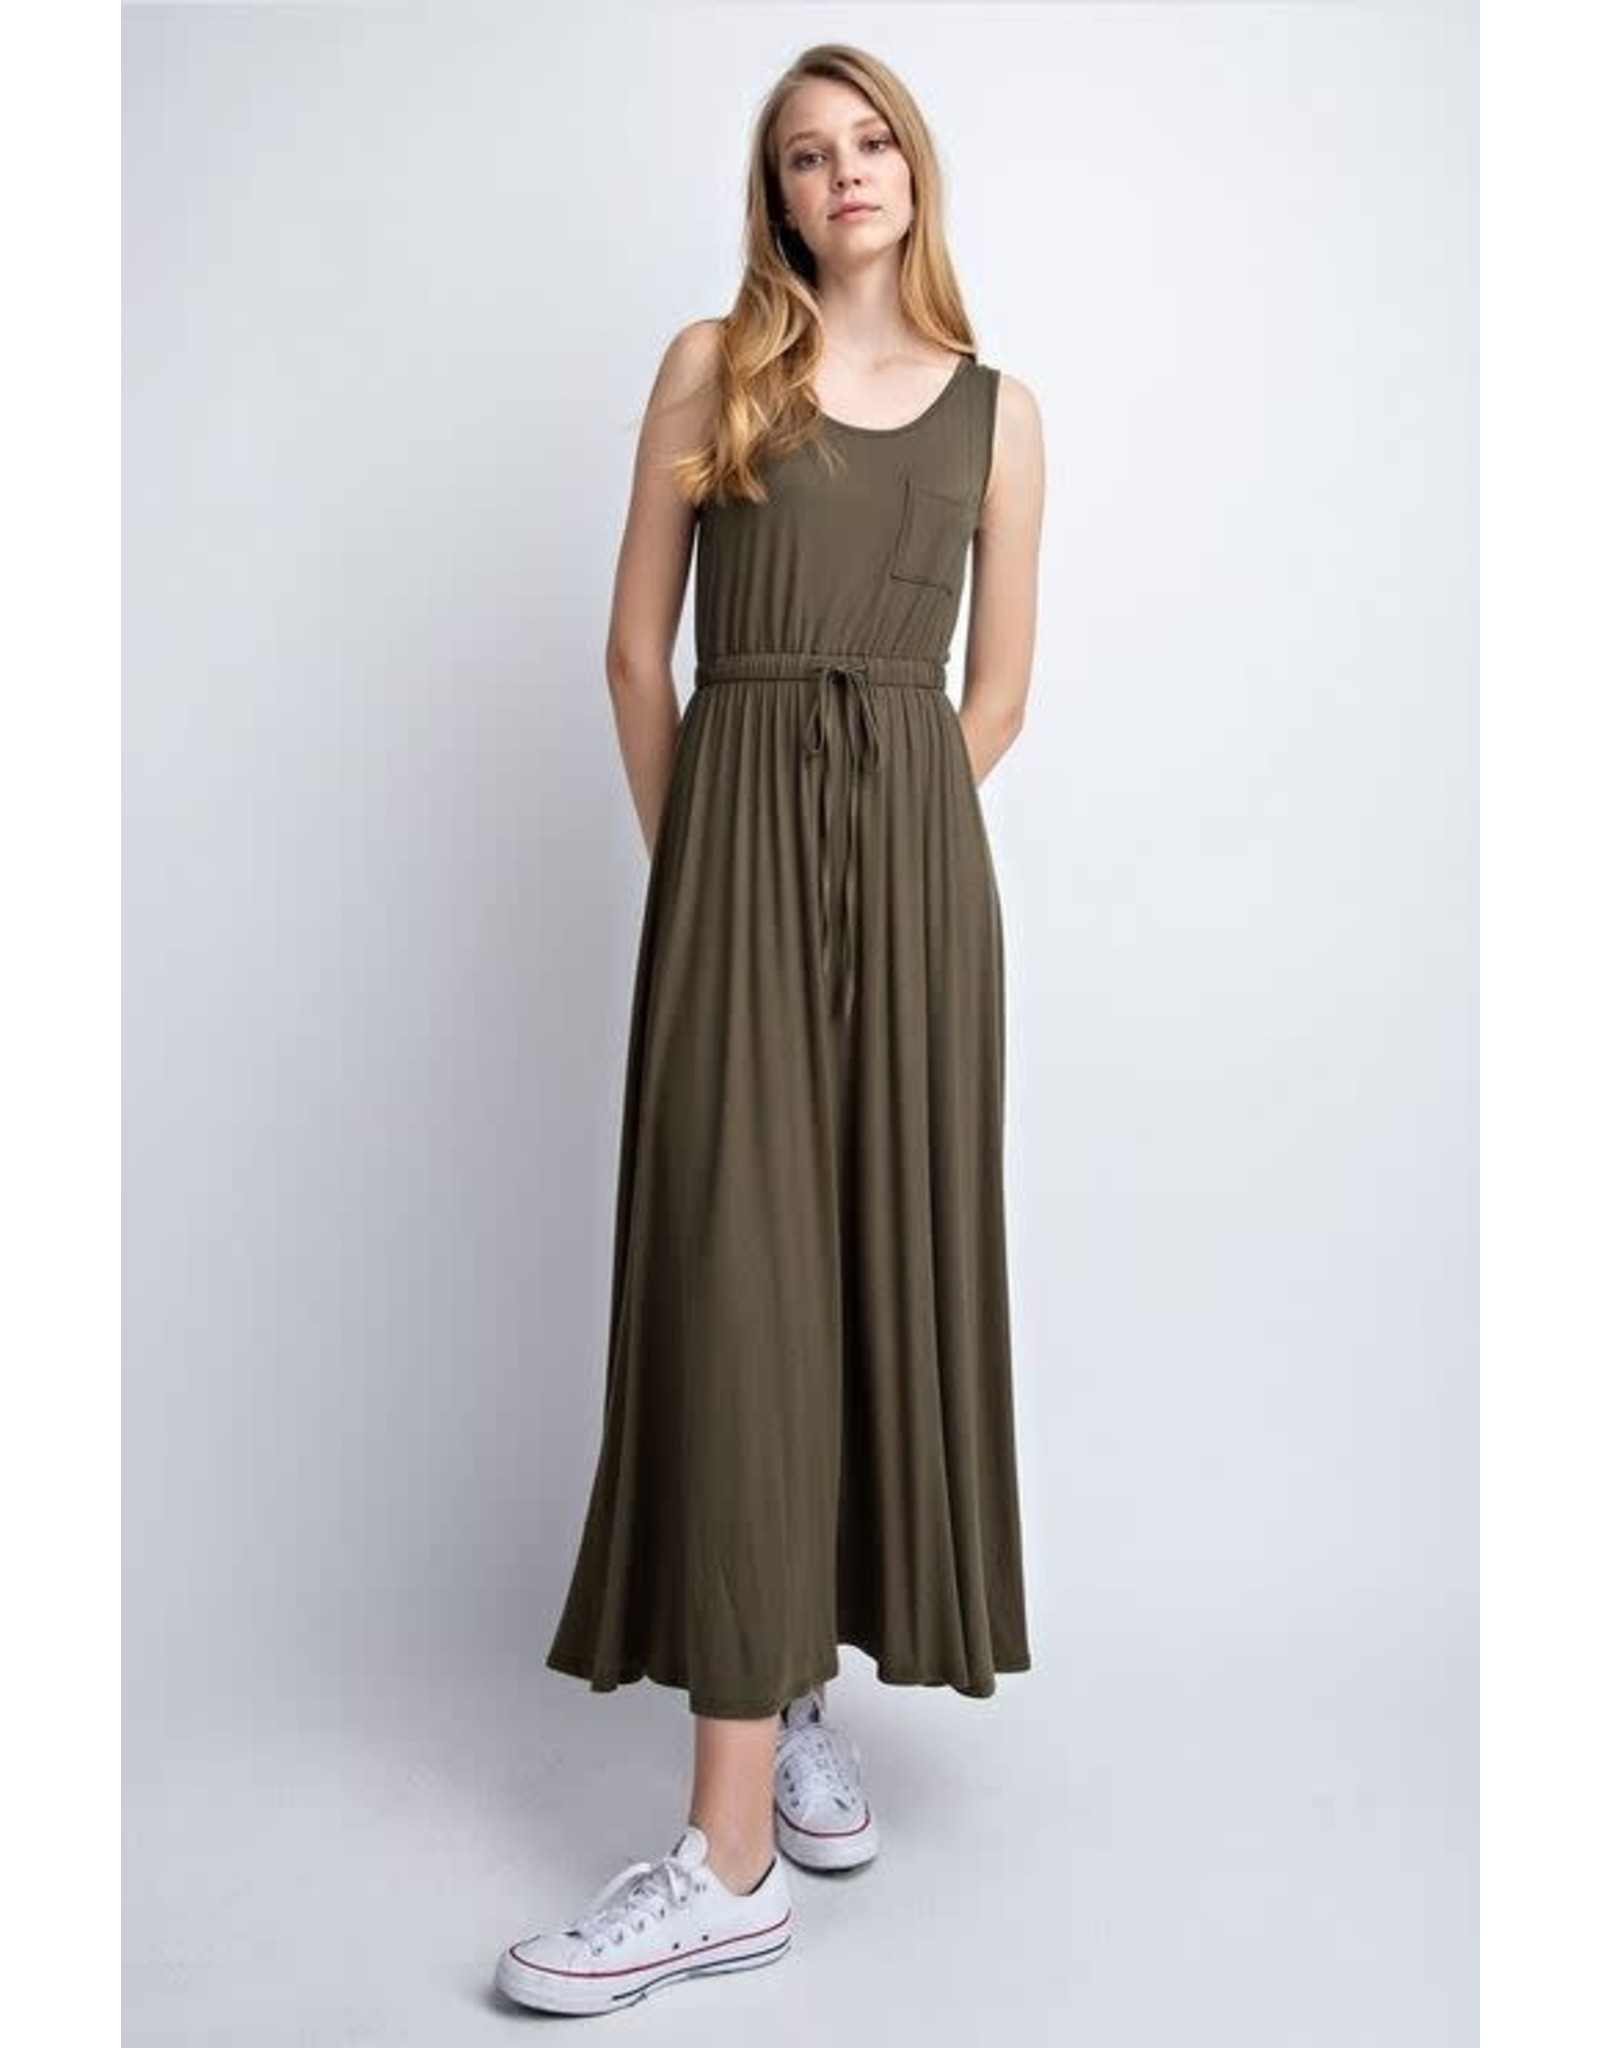 OLIVE SLEEVELESS MAXI DRESS WITH ELASTIC TIE WAIST